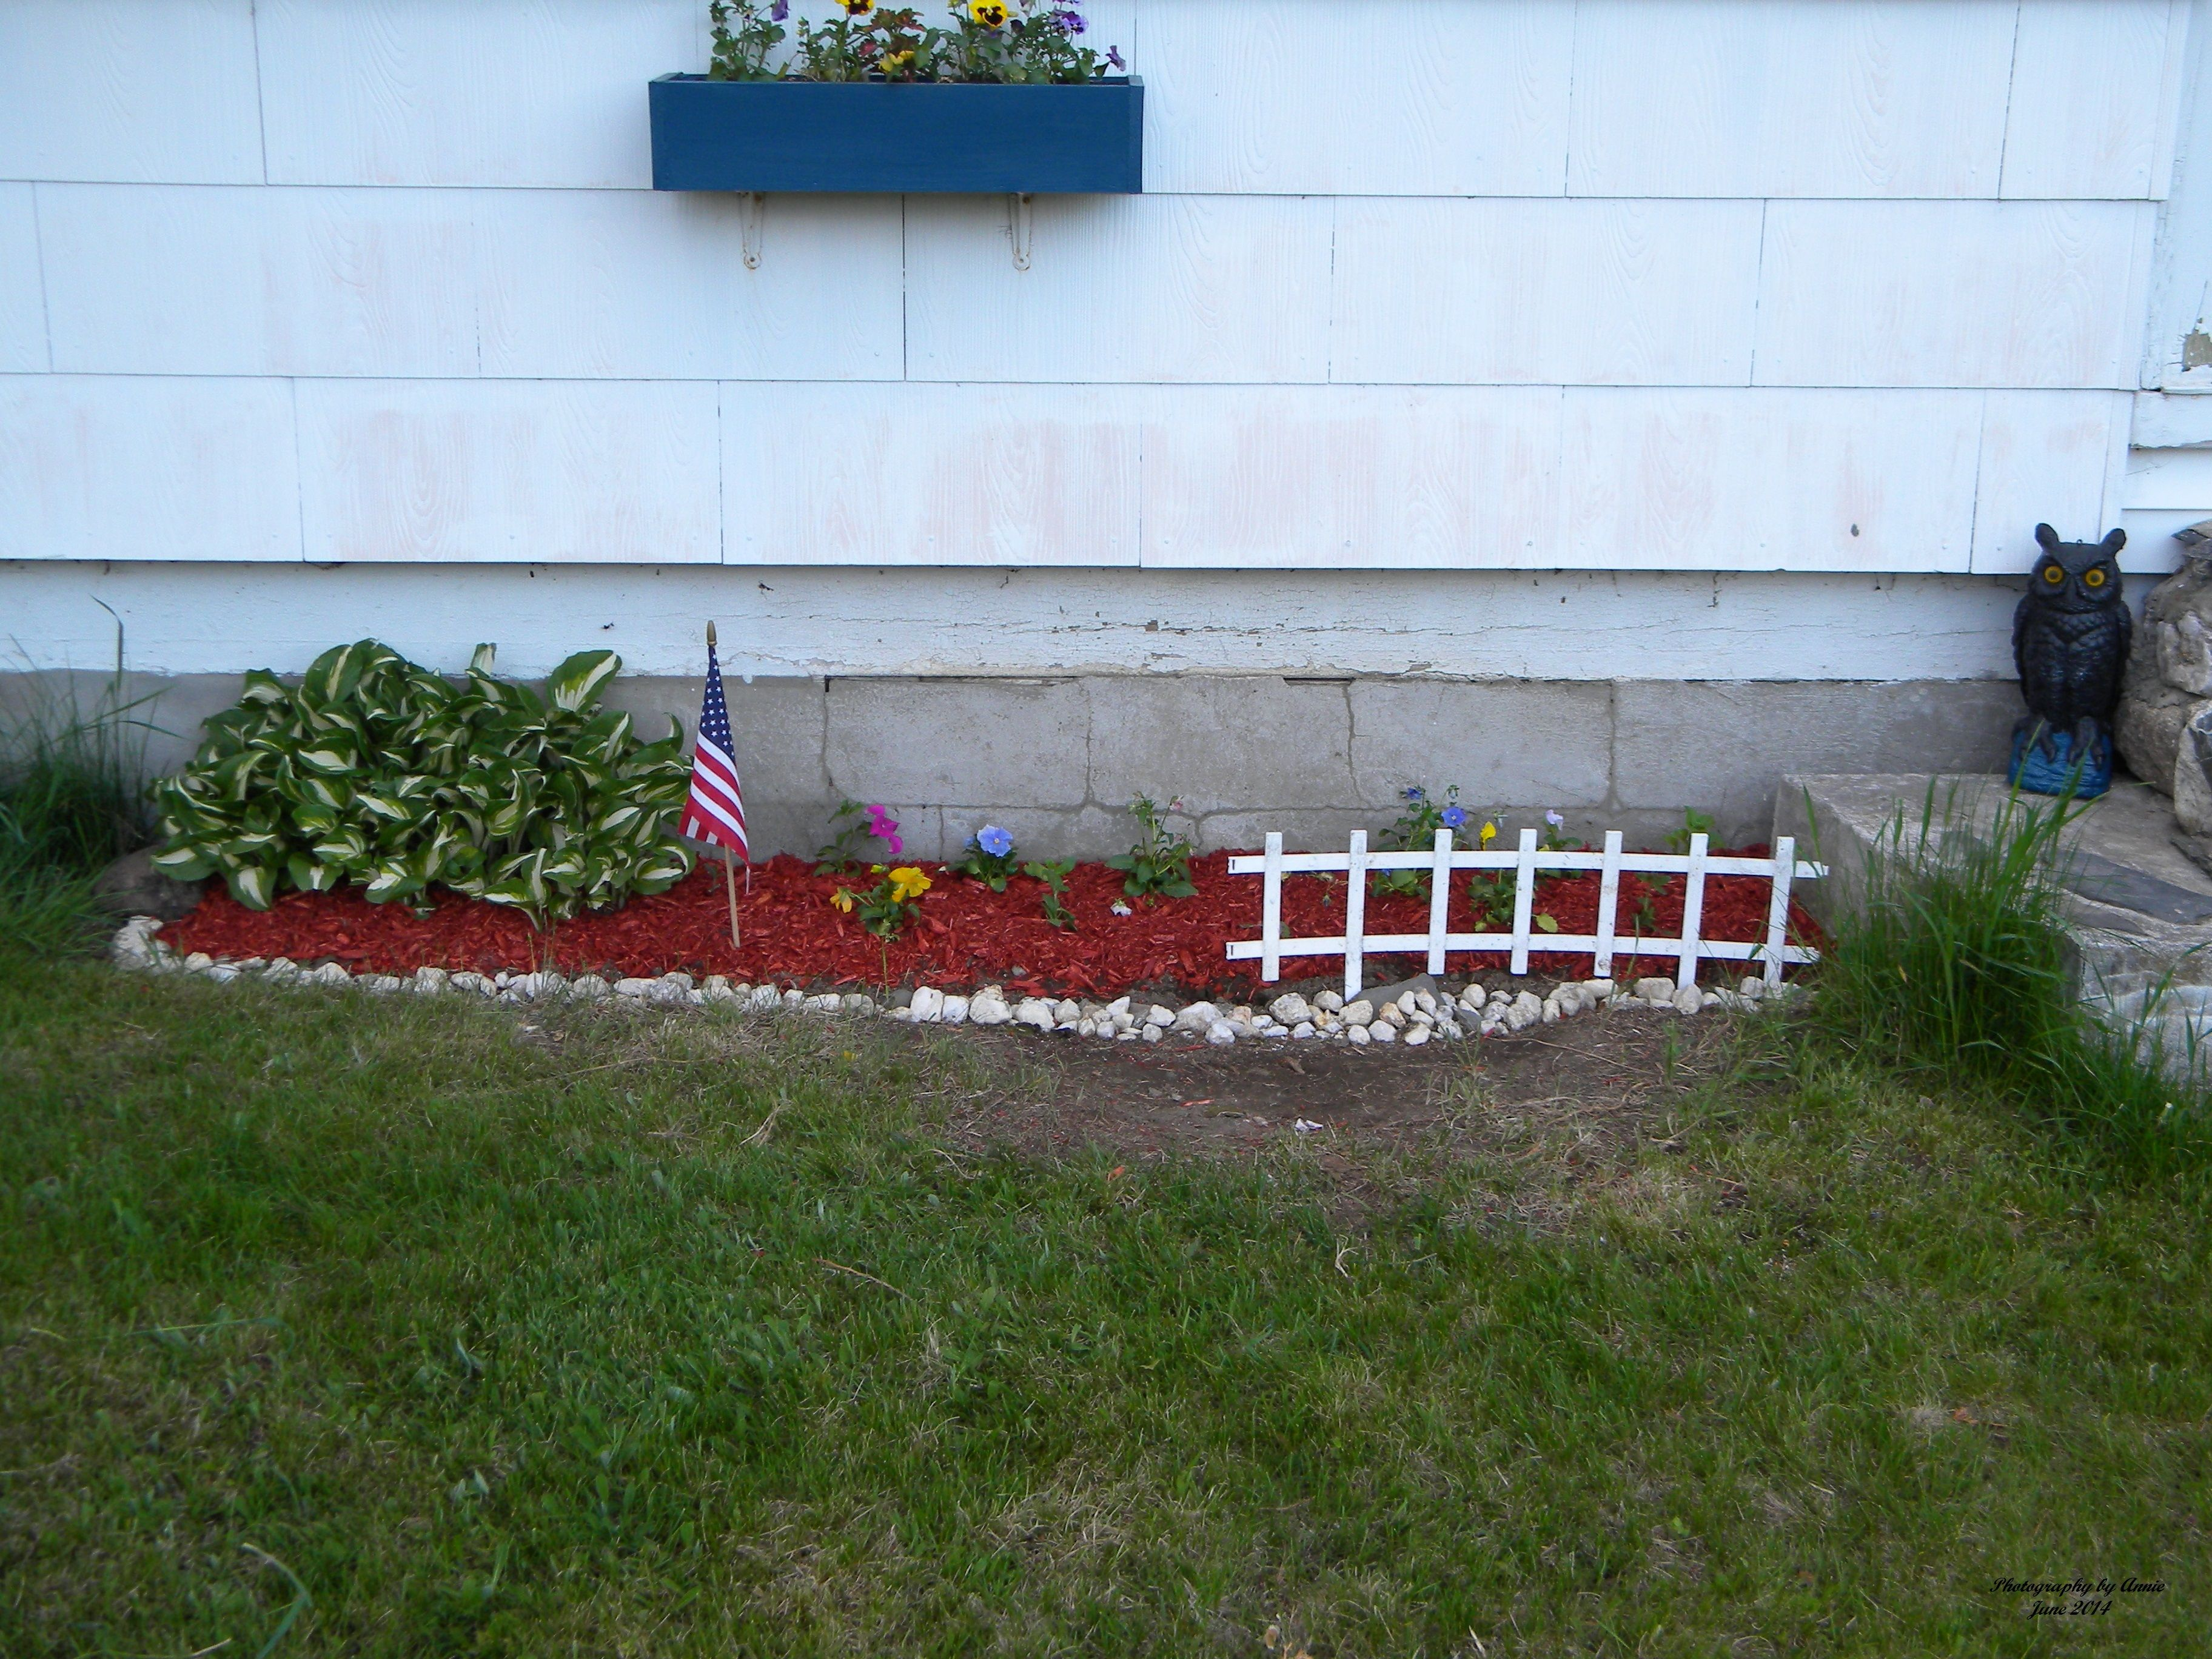 One of the flower gardens I finished today.